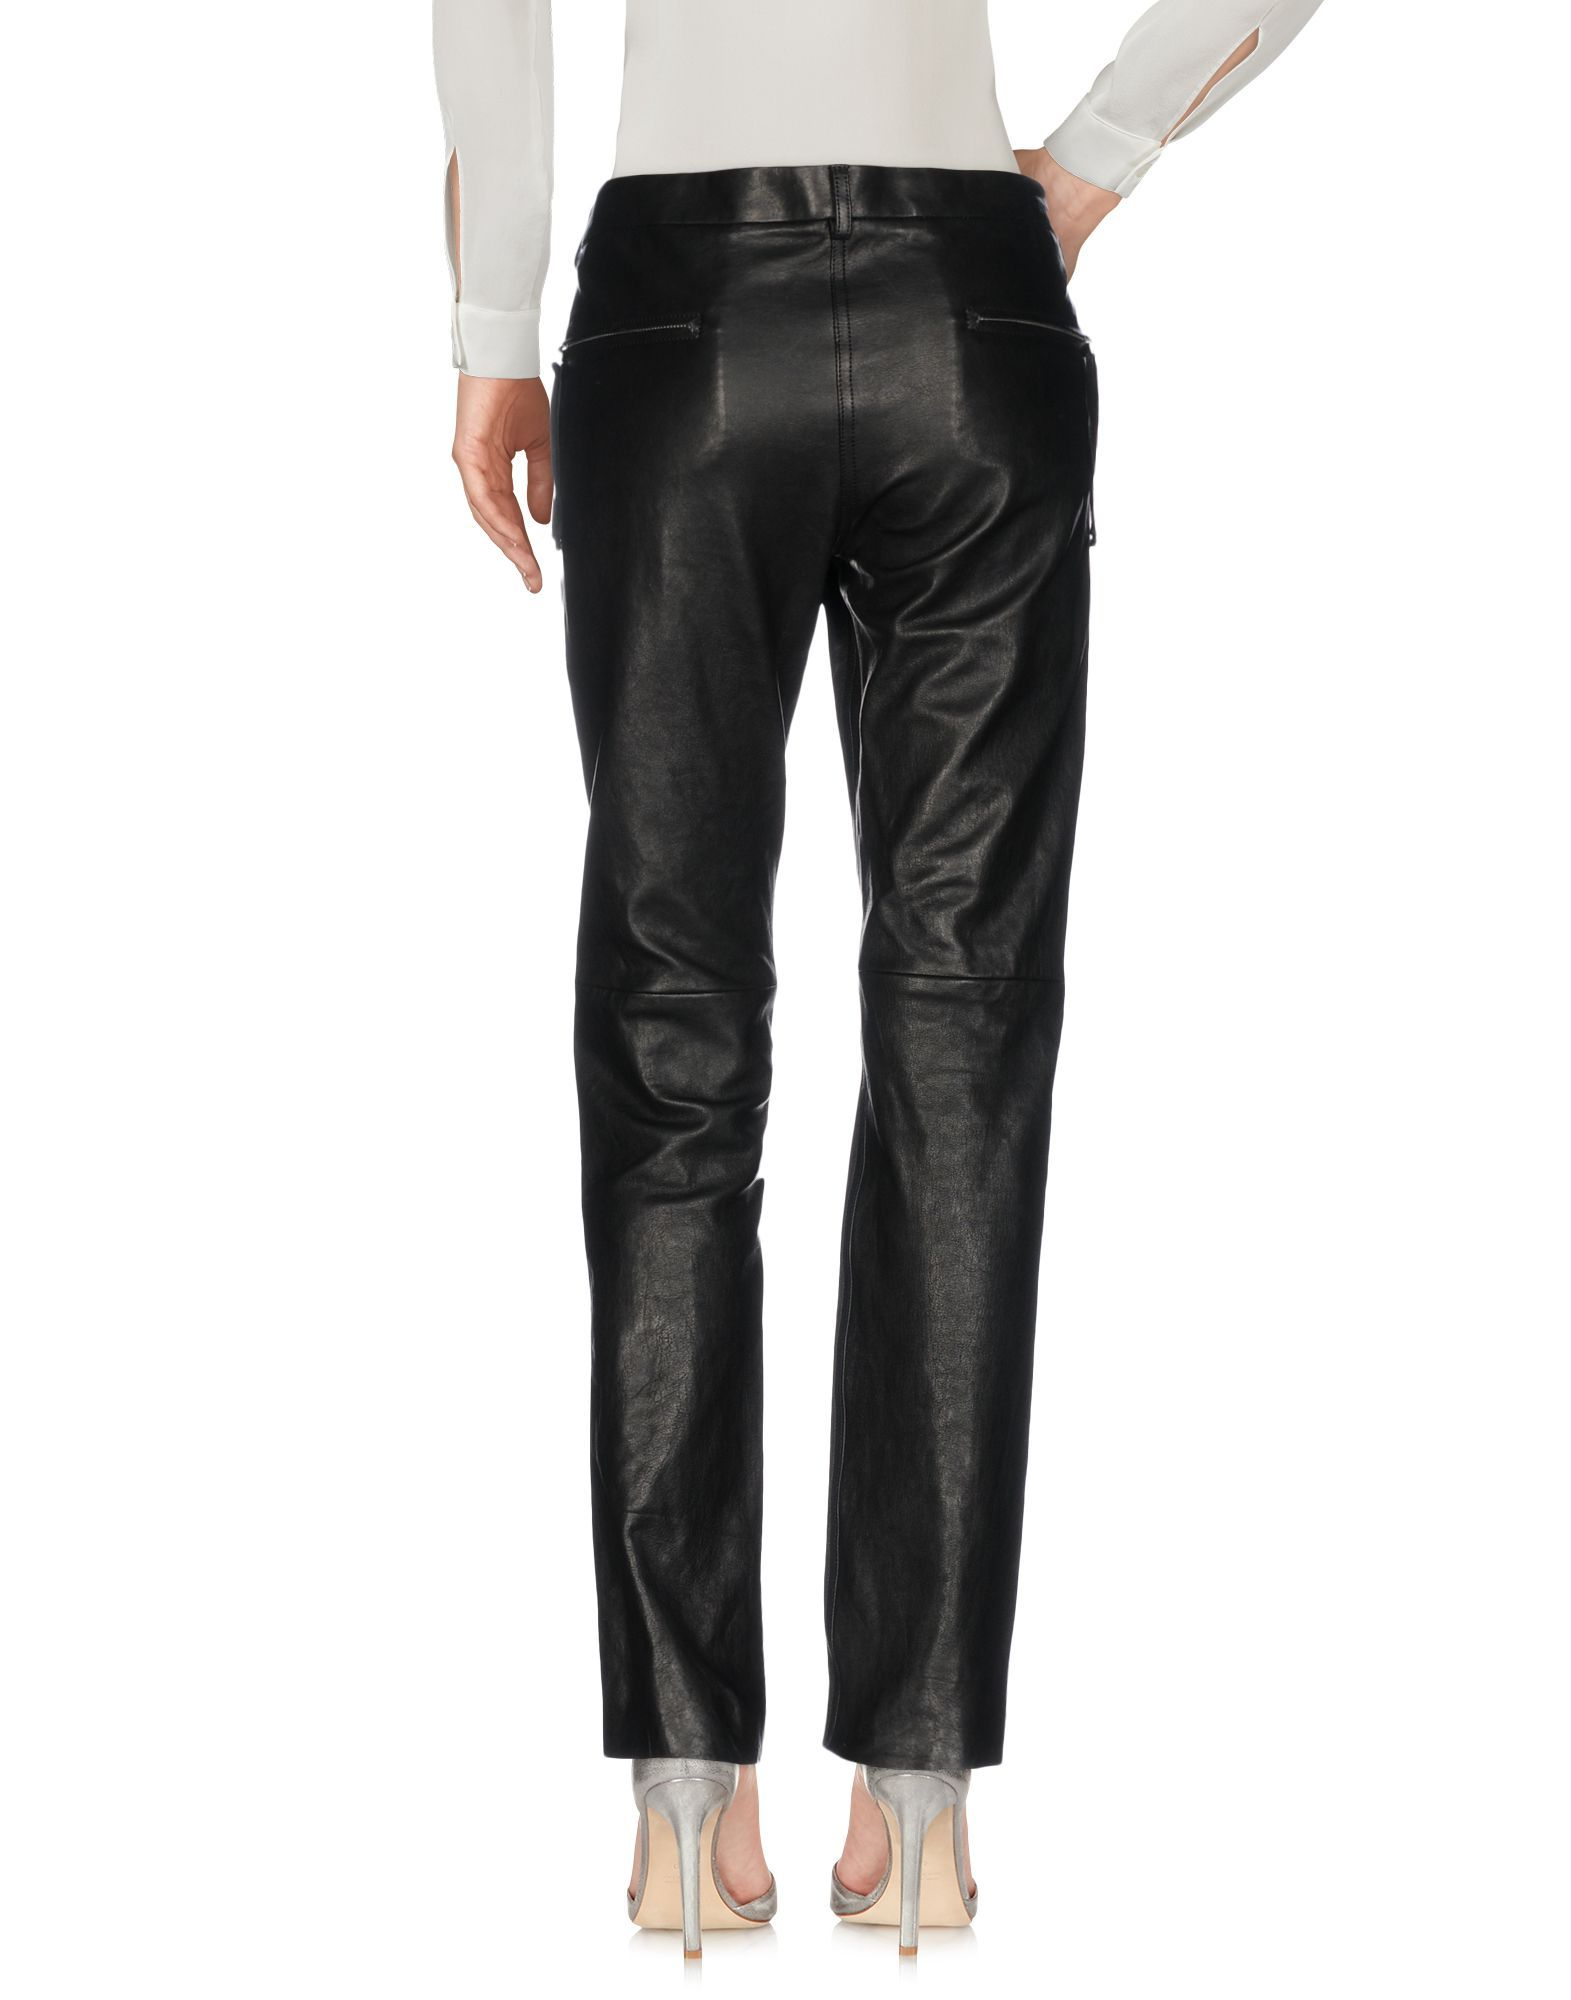 Isabel Marant Black Lambskin Leather Trousers